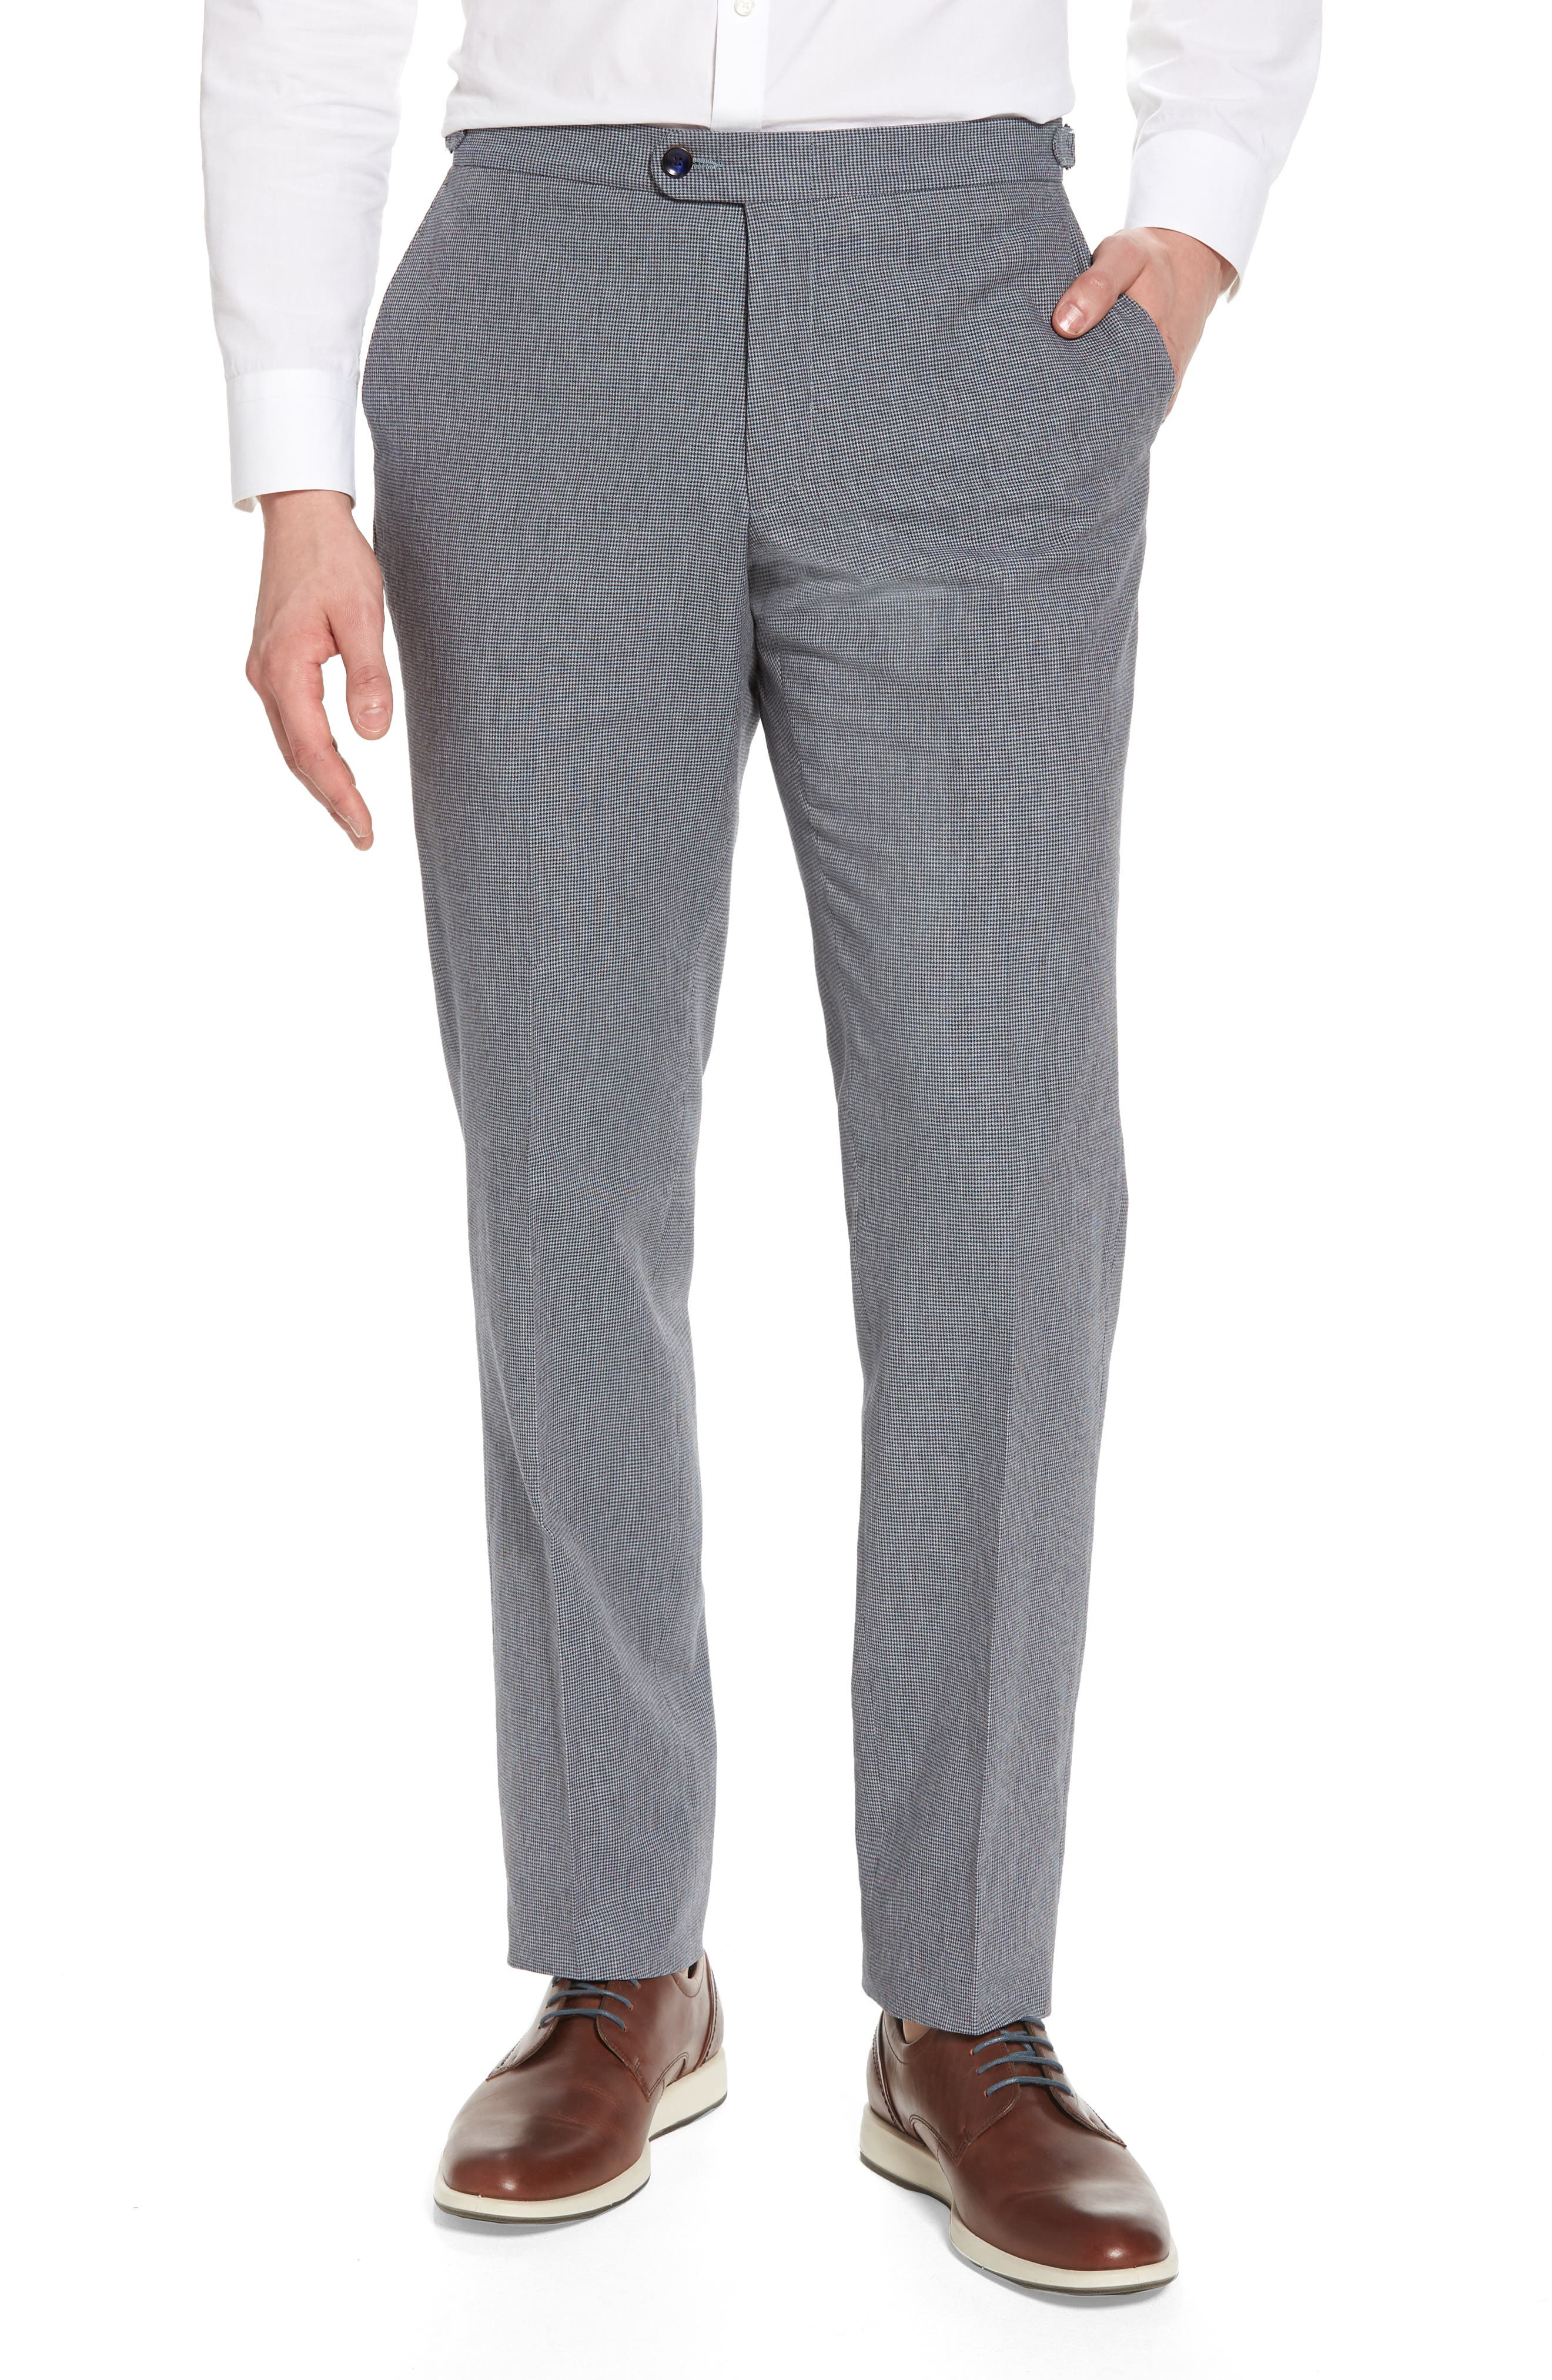 Flat Front Houndstooth Cotton Trousers,                             Main thumbnail 1, color,                             431